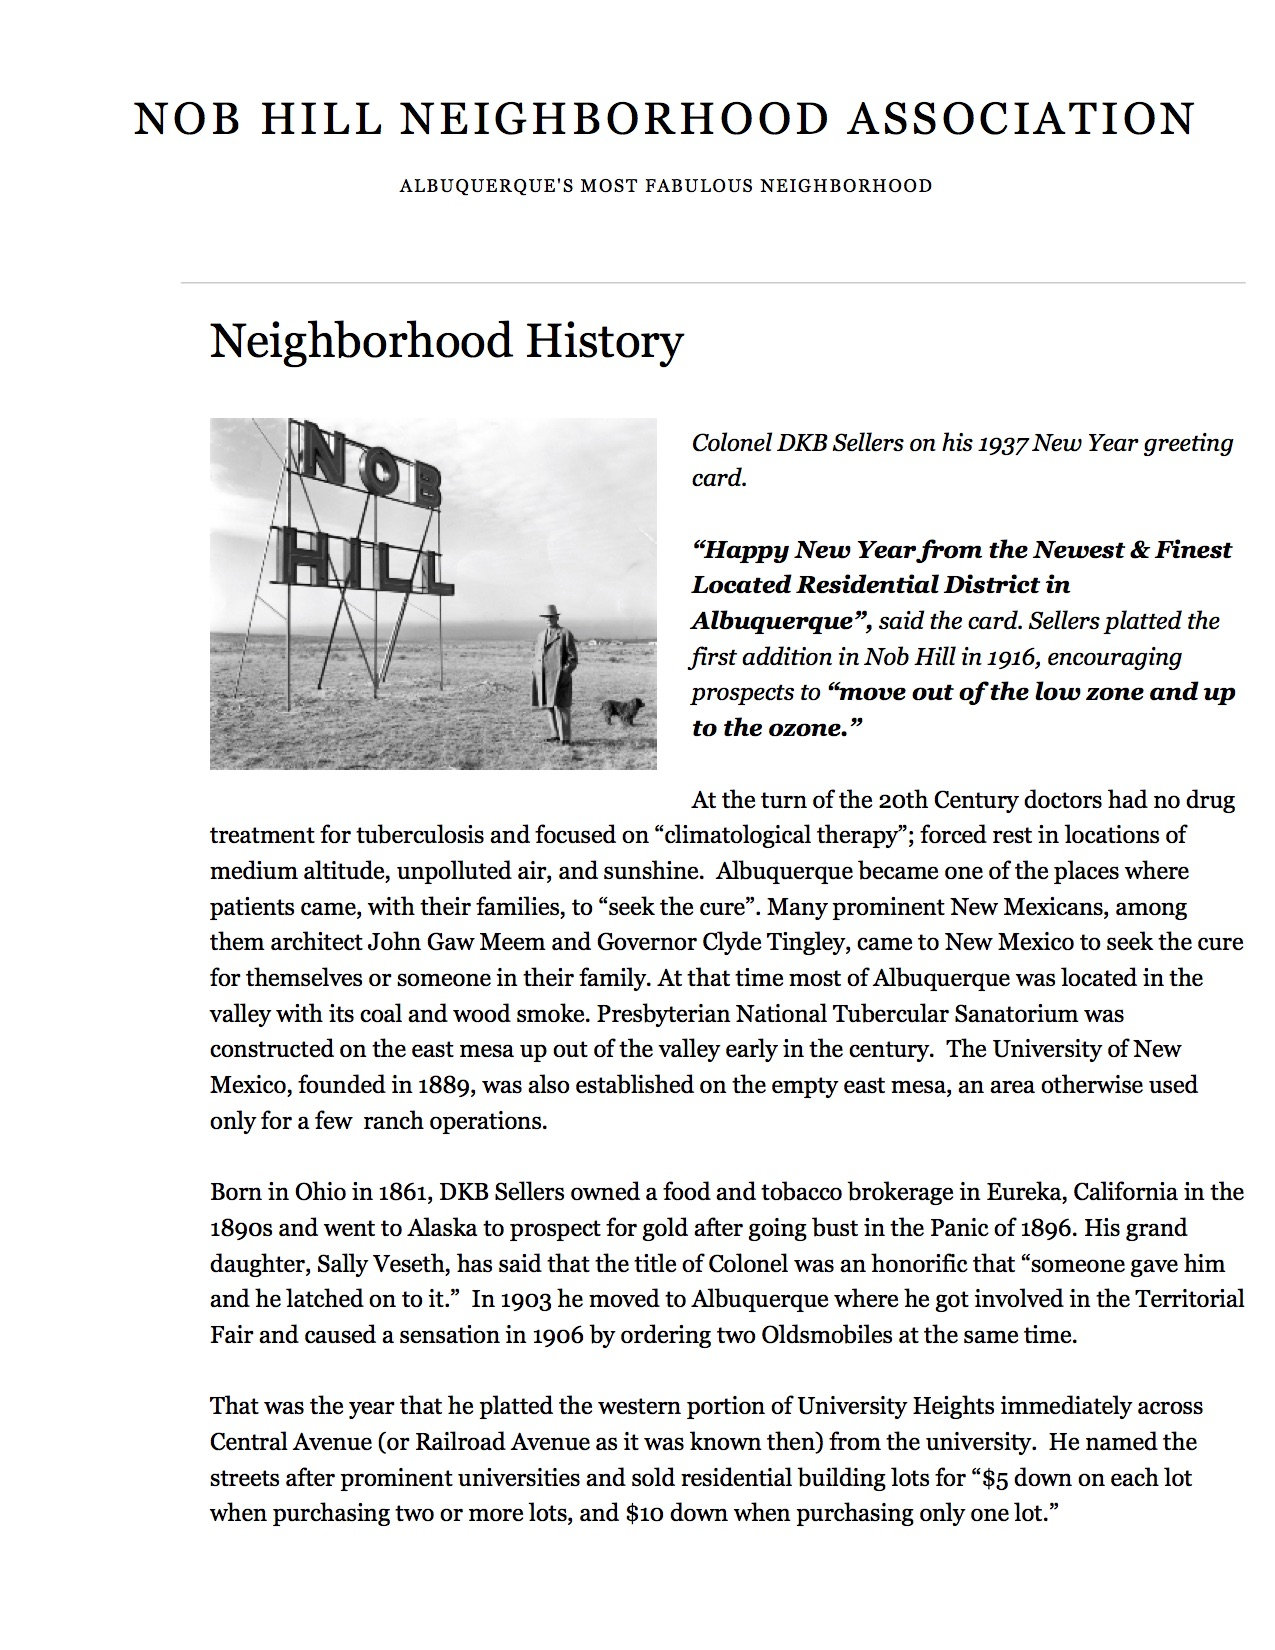 Nob Hill Neighborhood Association History